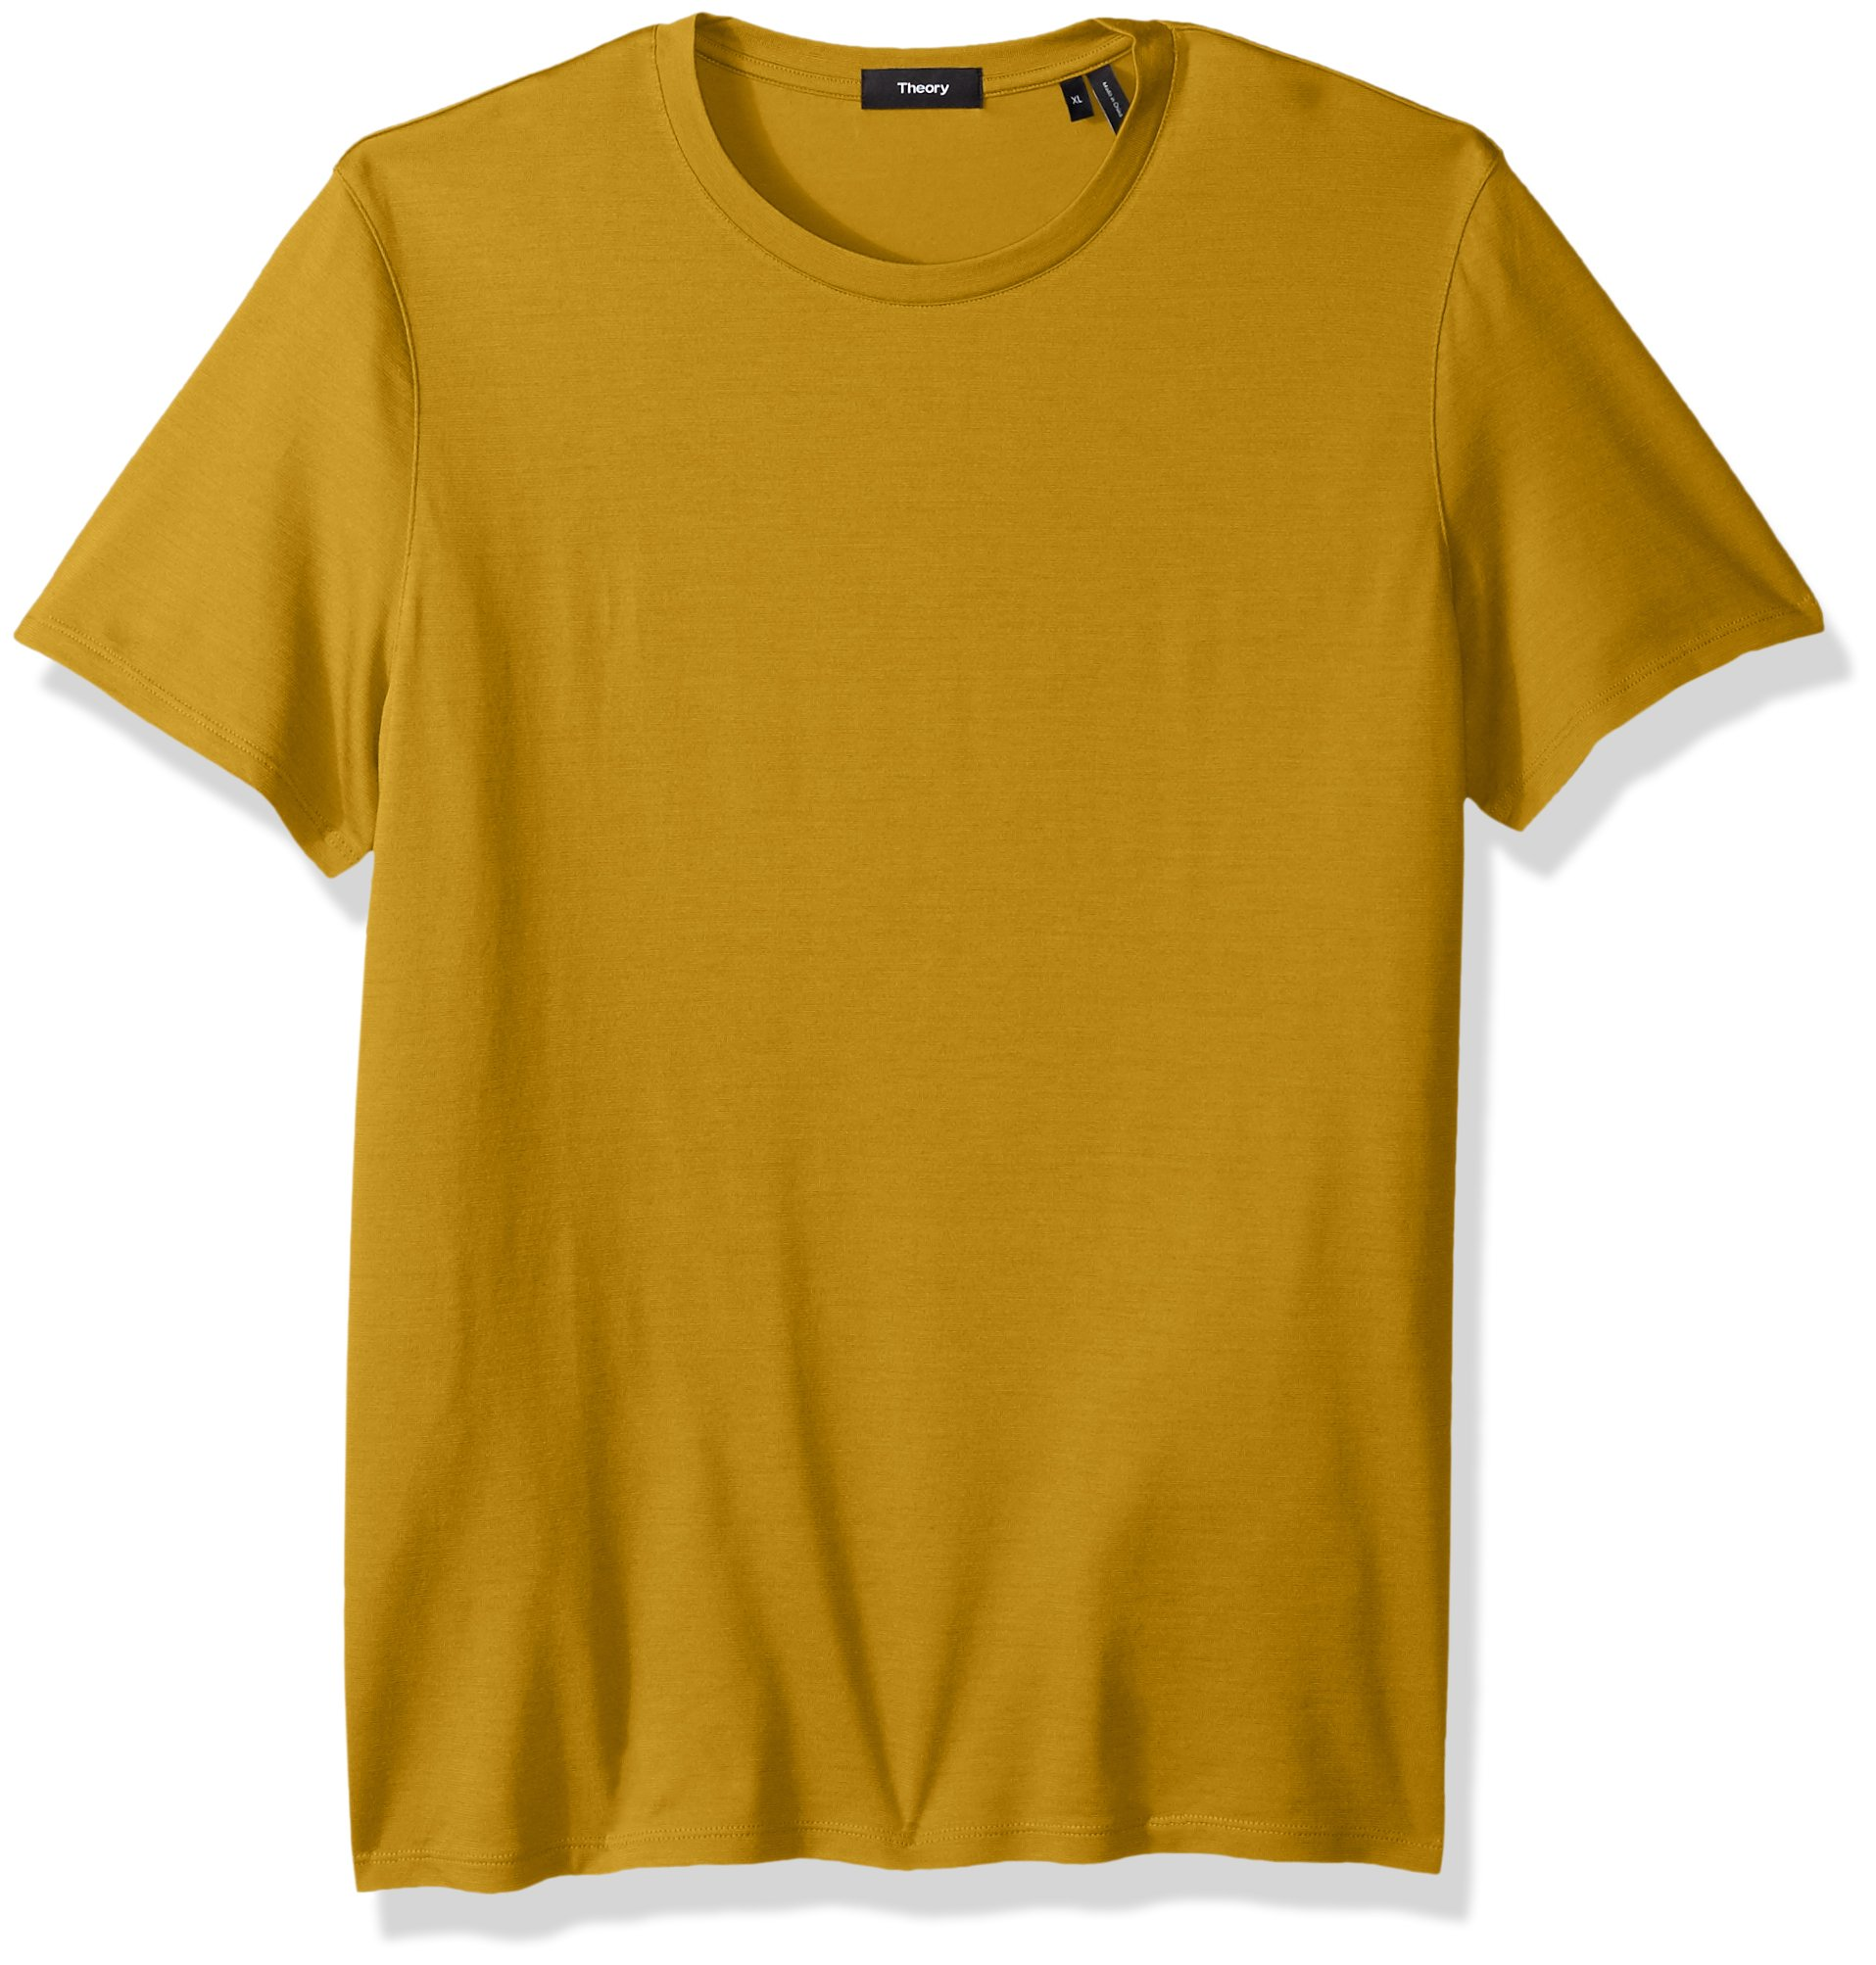 Theory Men's Dressy Silk Blend Crew Neck T-Shirt, Gobi, L